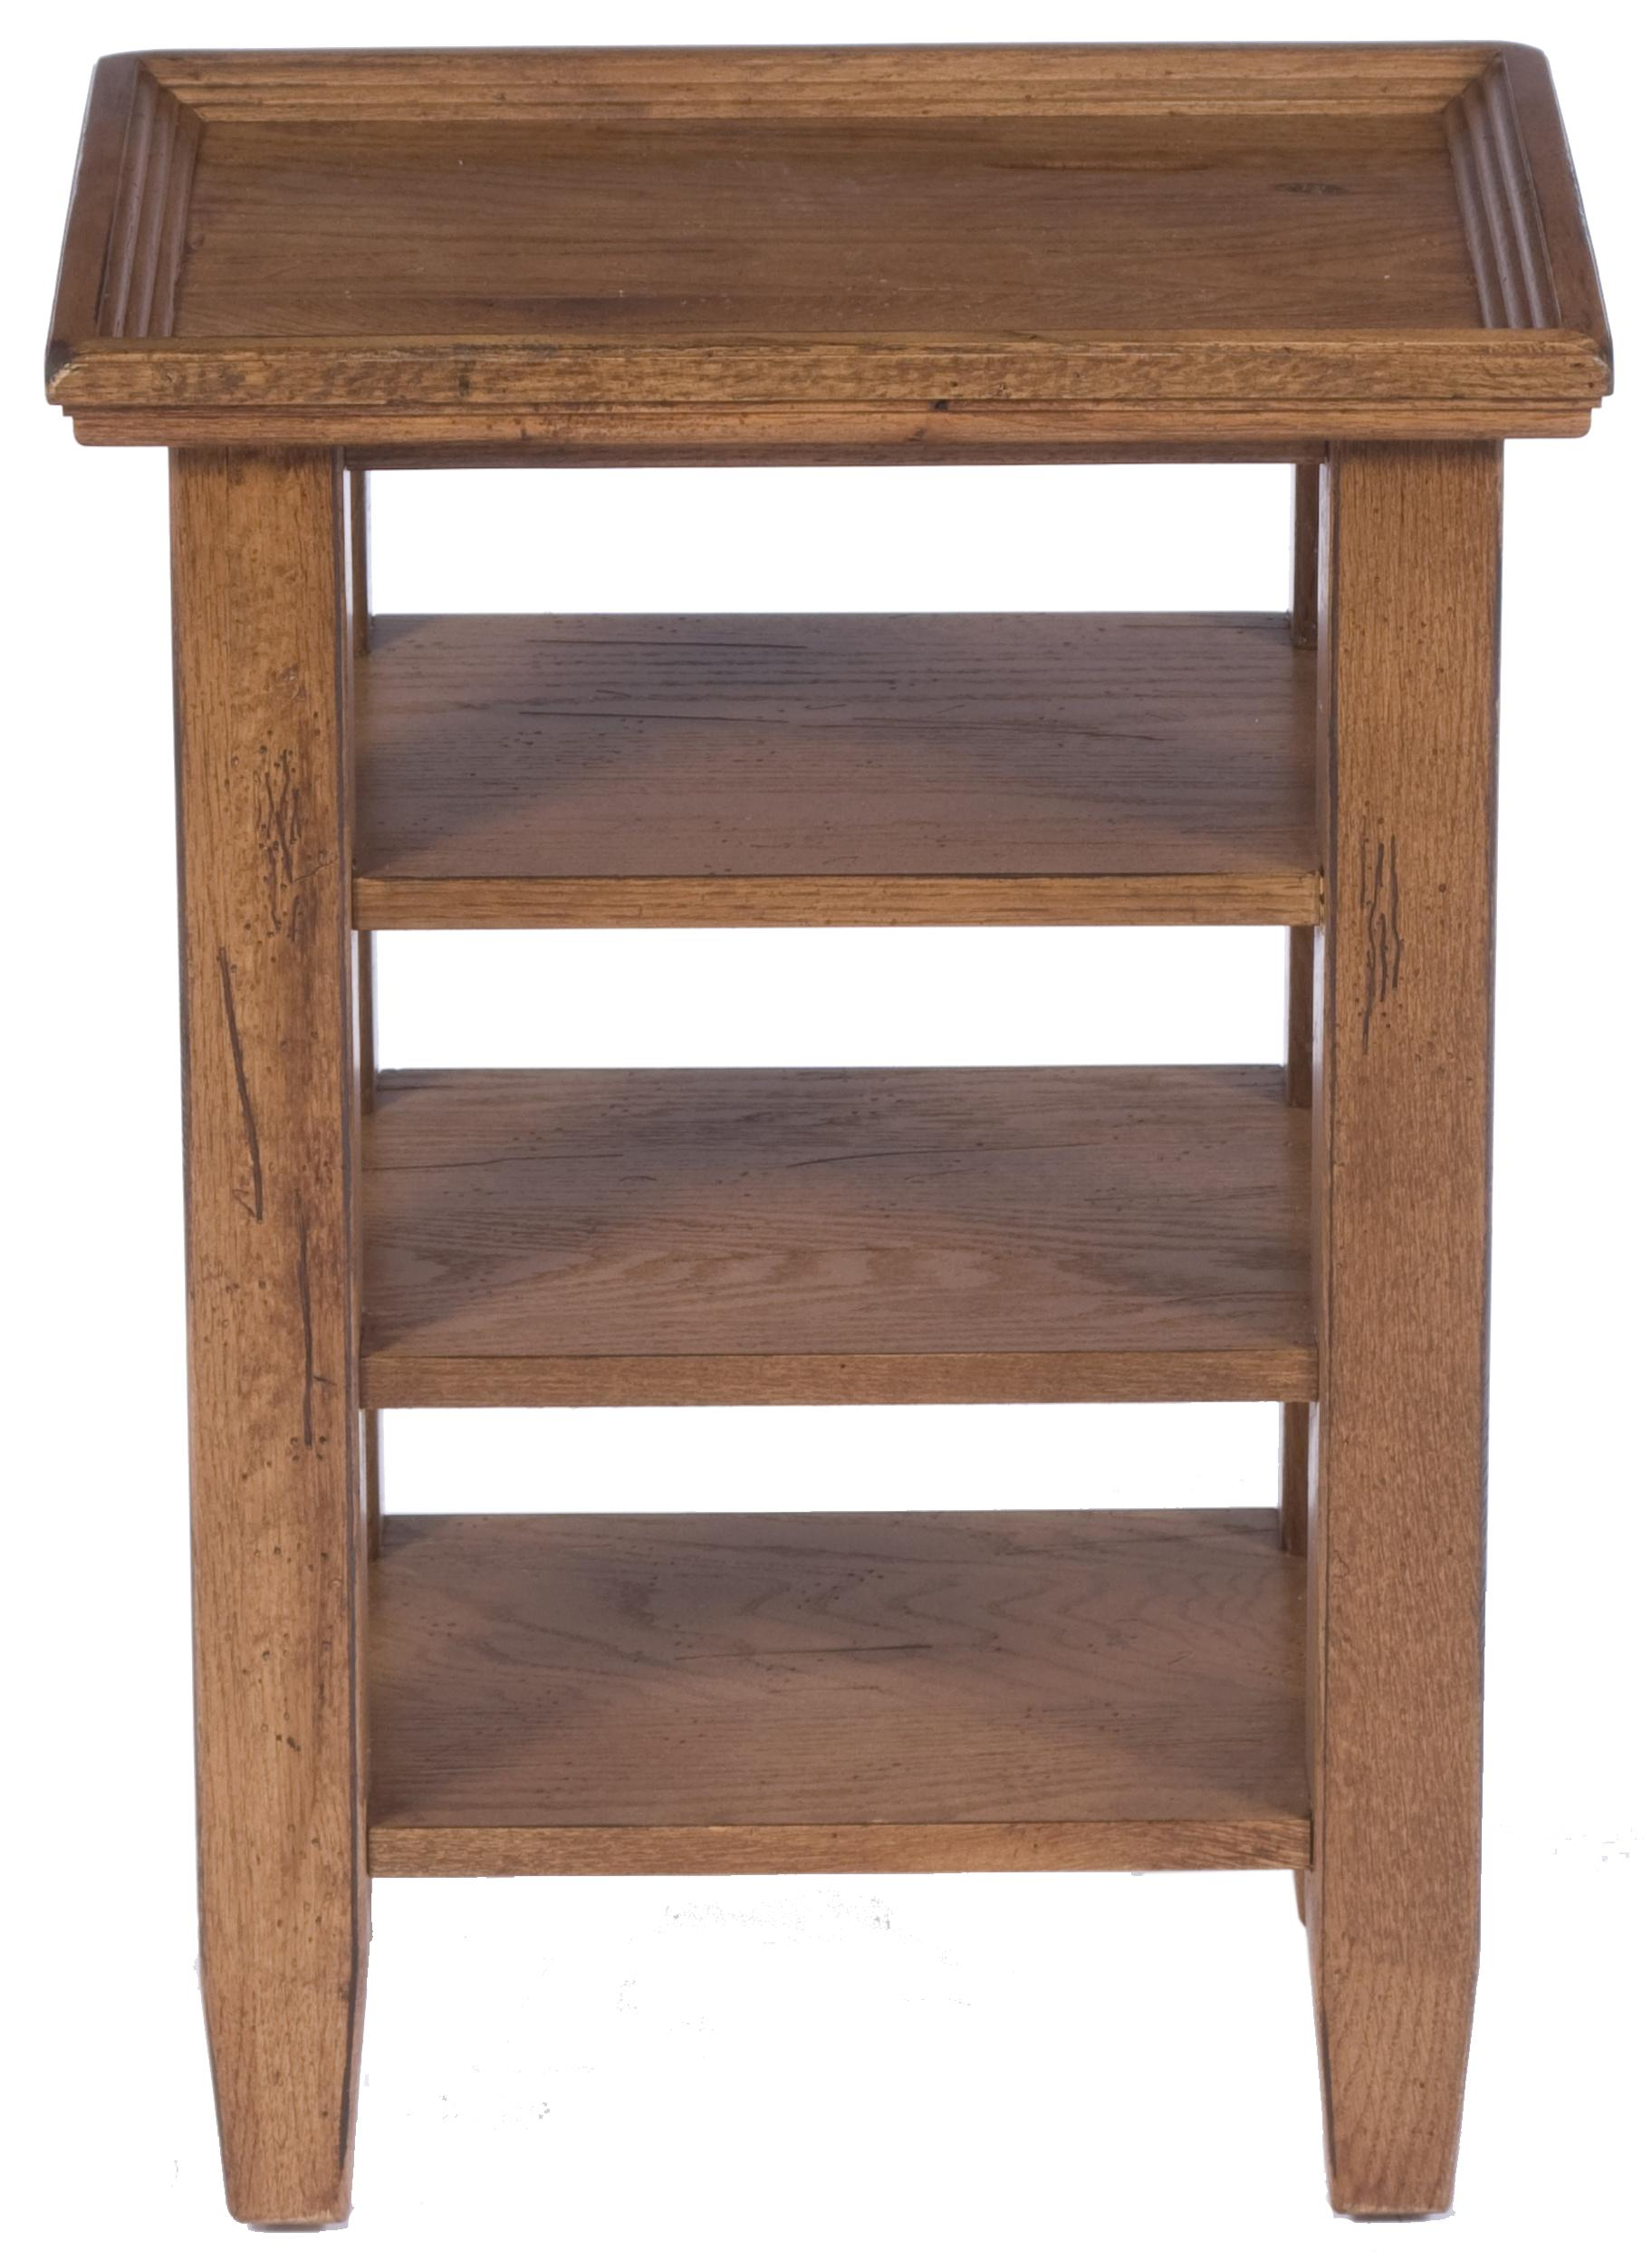 Broyhill Furniture Attic Heirlooms End Table - Item Number: 3397-07